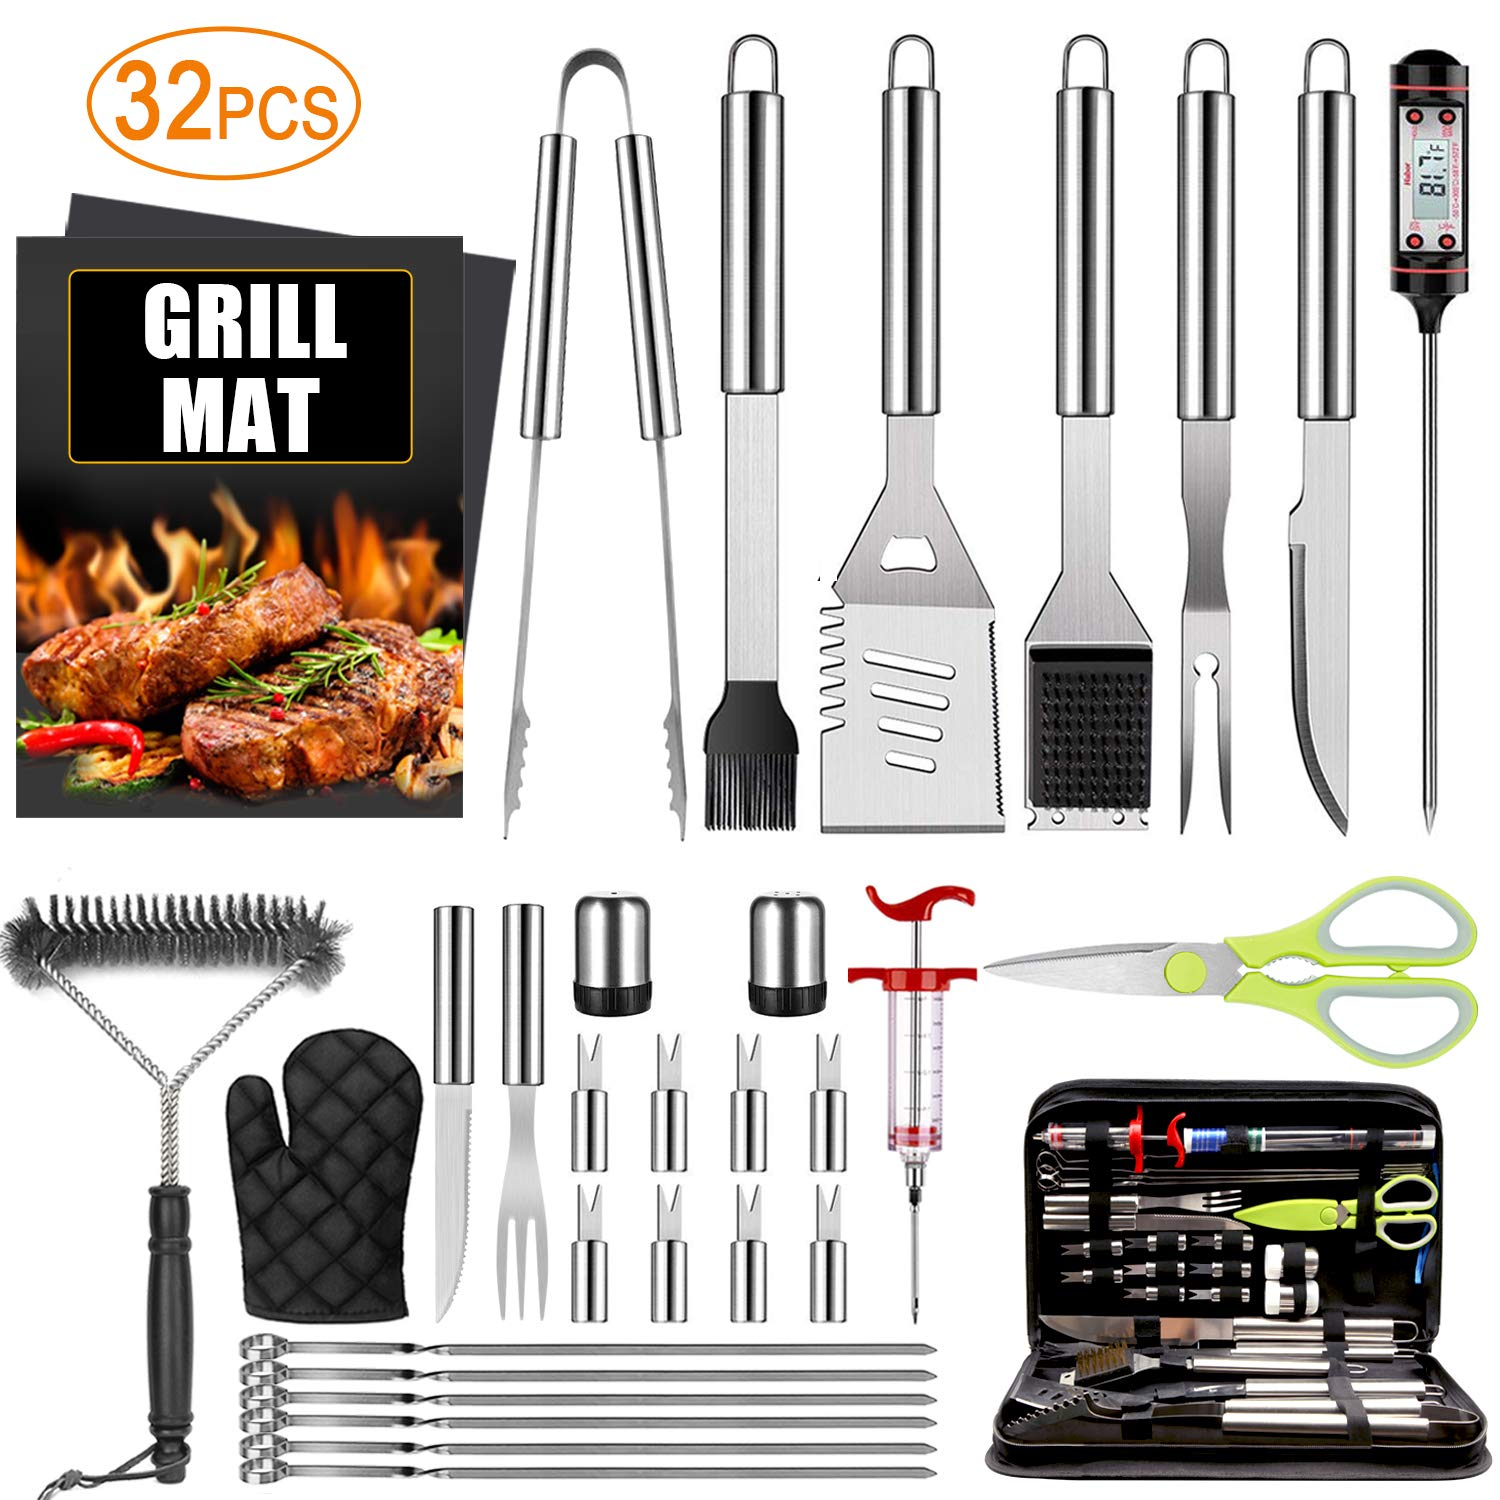 32PCS BBQ Grill Accessories Tools Set, Stainless Steel Grilling Tools with Carry Bag, Thermometer, Grill Mats for Camping/Backyard Barbecue, Grill Tools Set for Men Women by TAIMASI